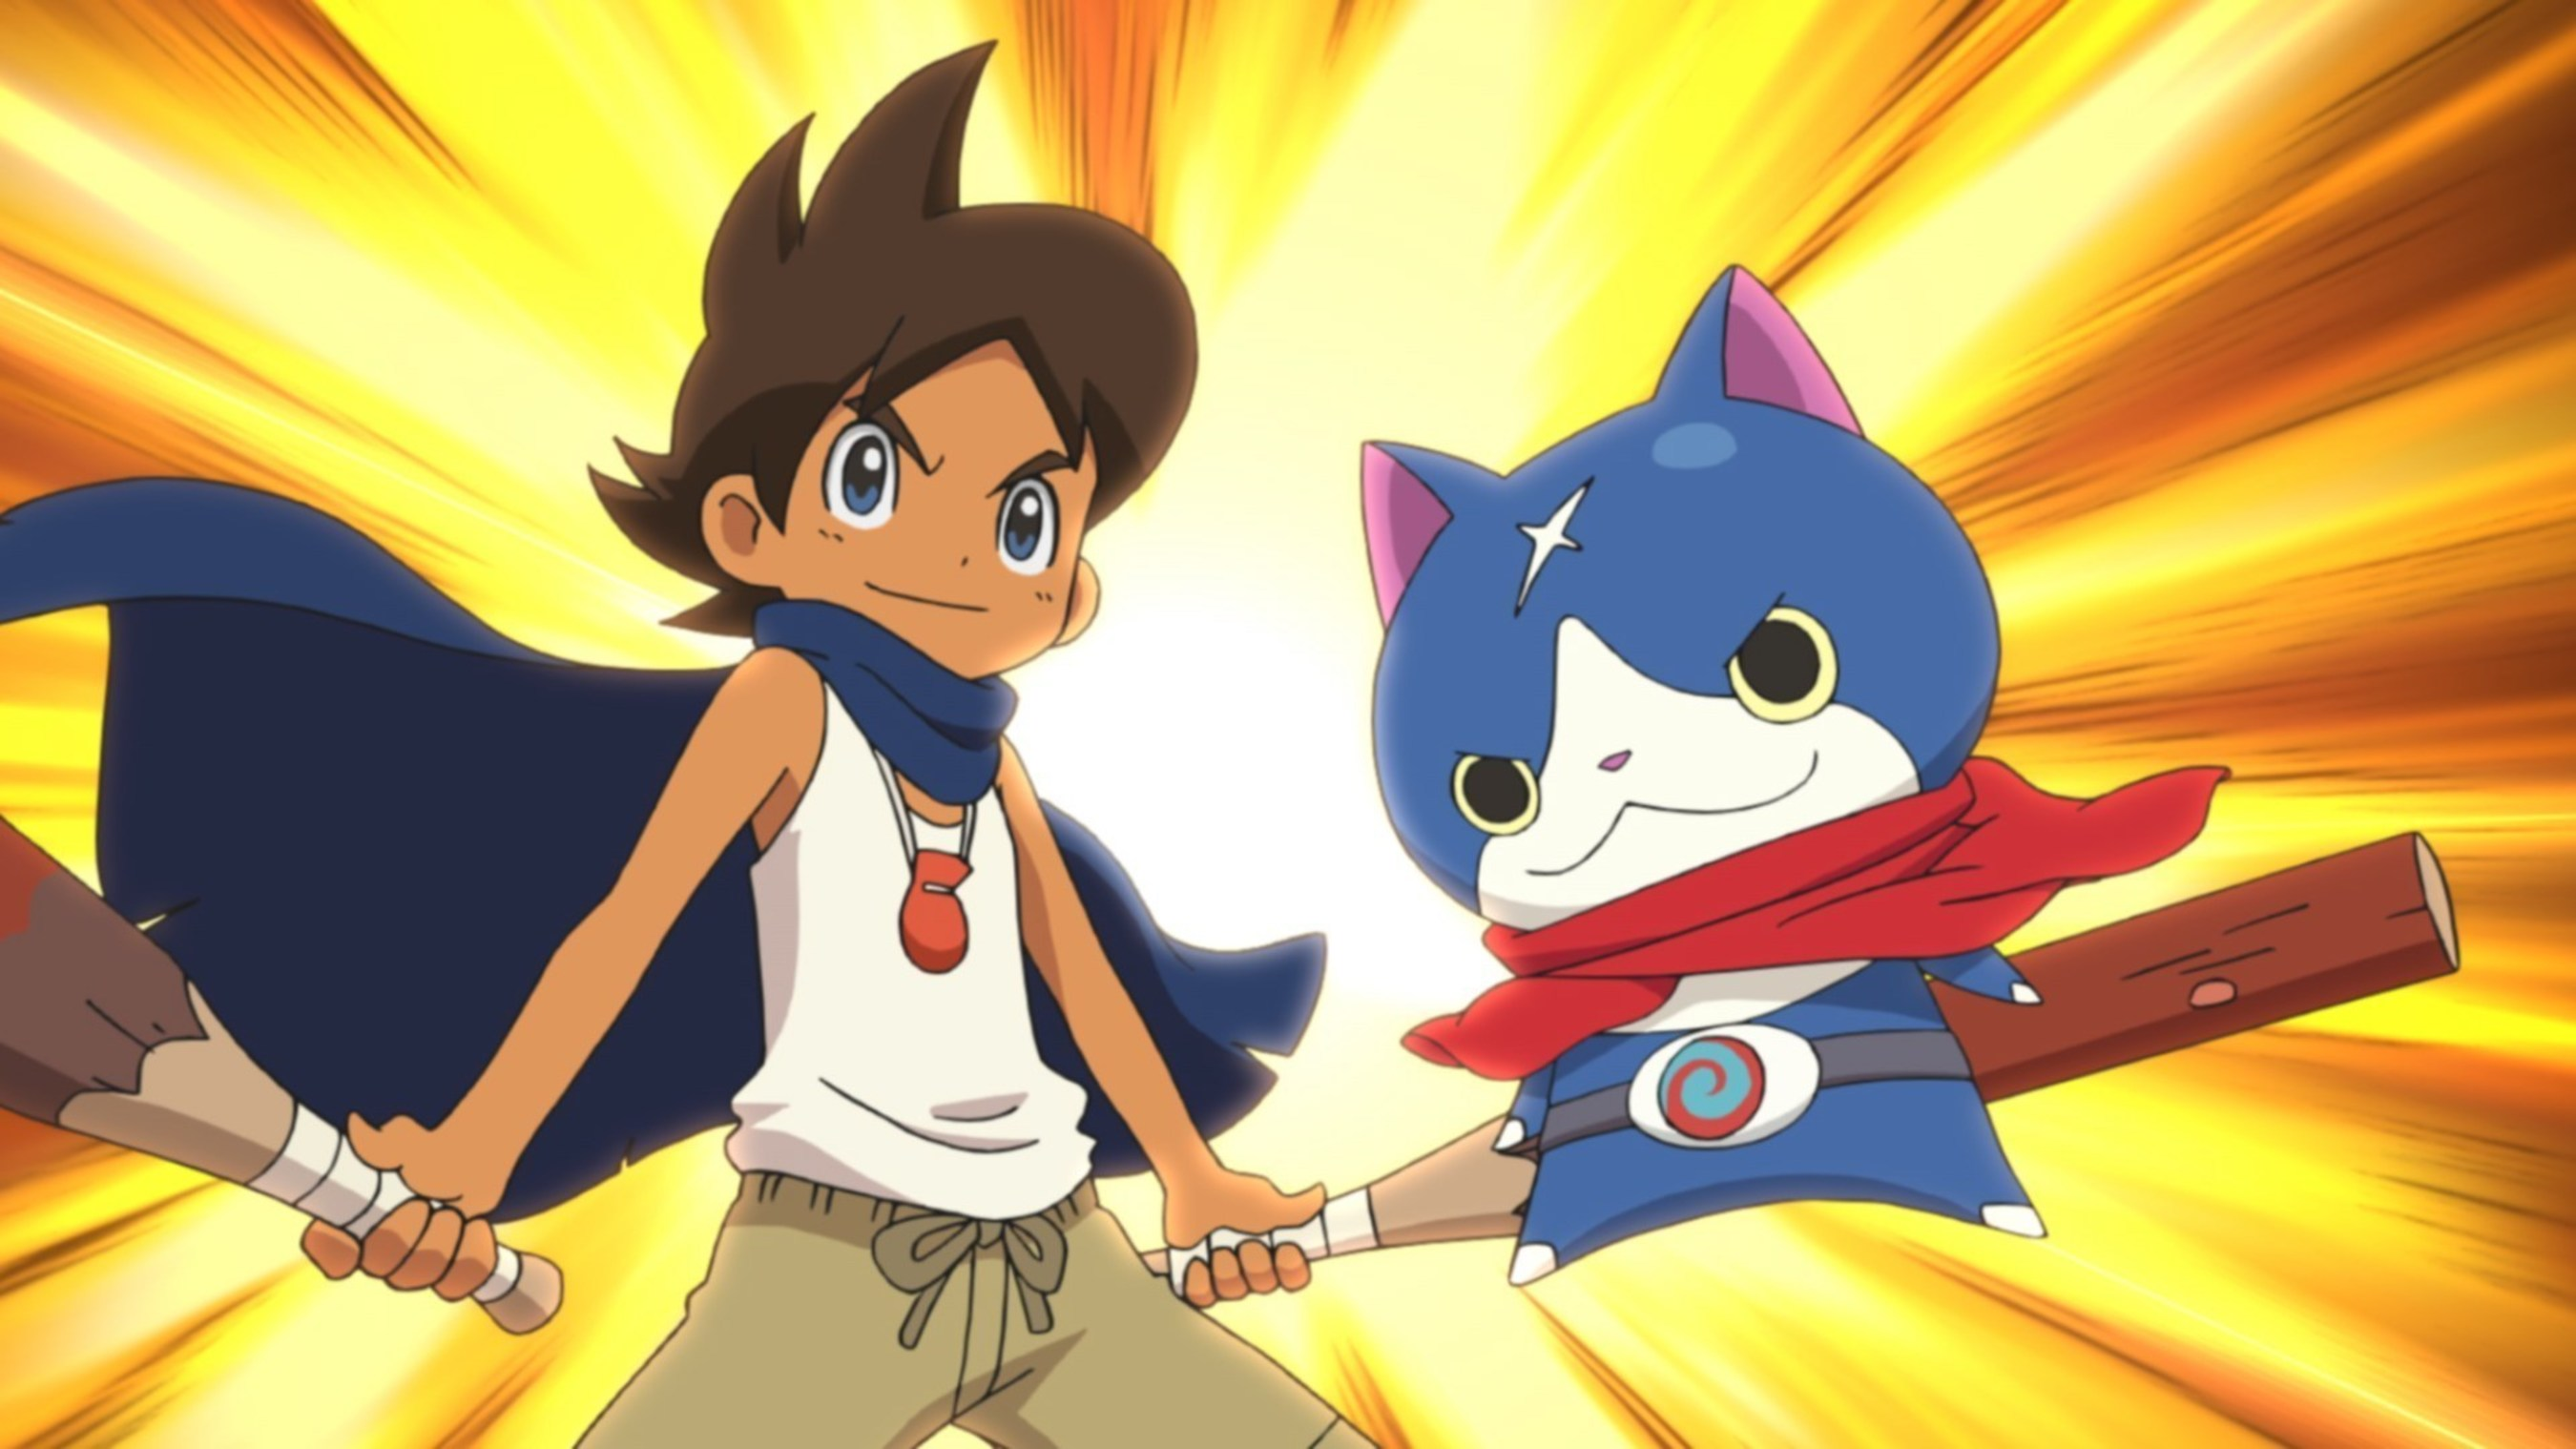 Nate and Hovernyan make for a formidable duo!